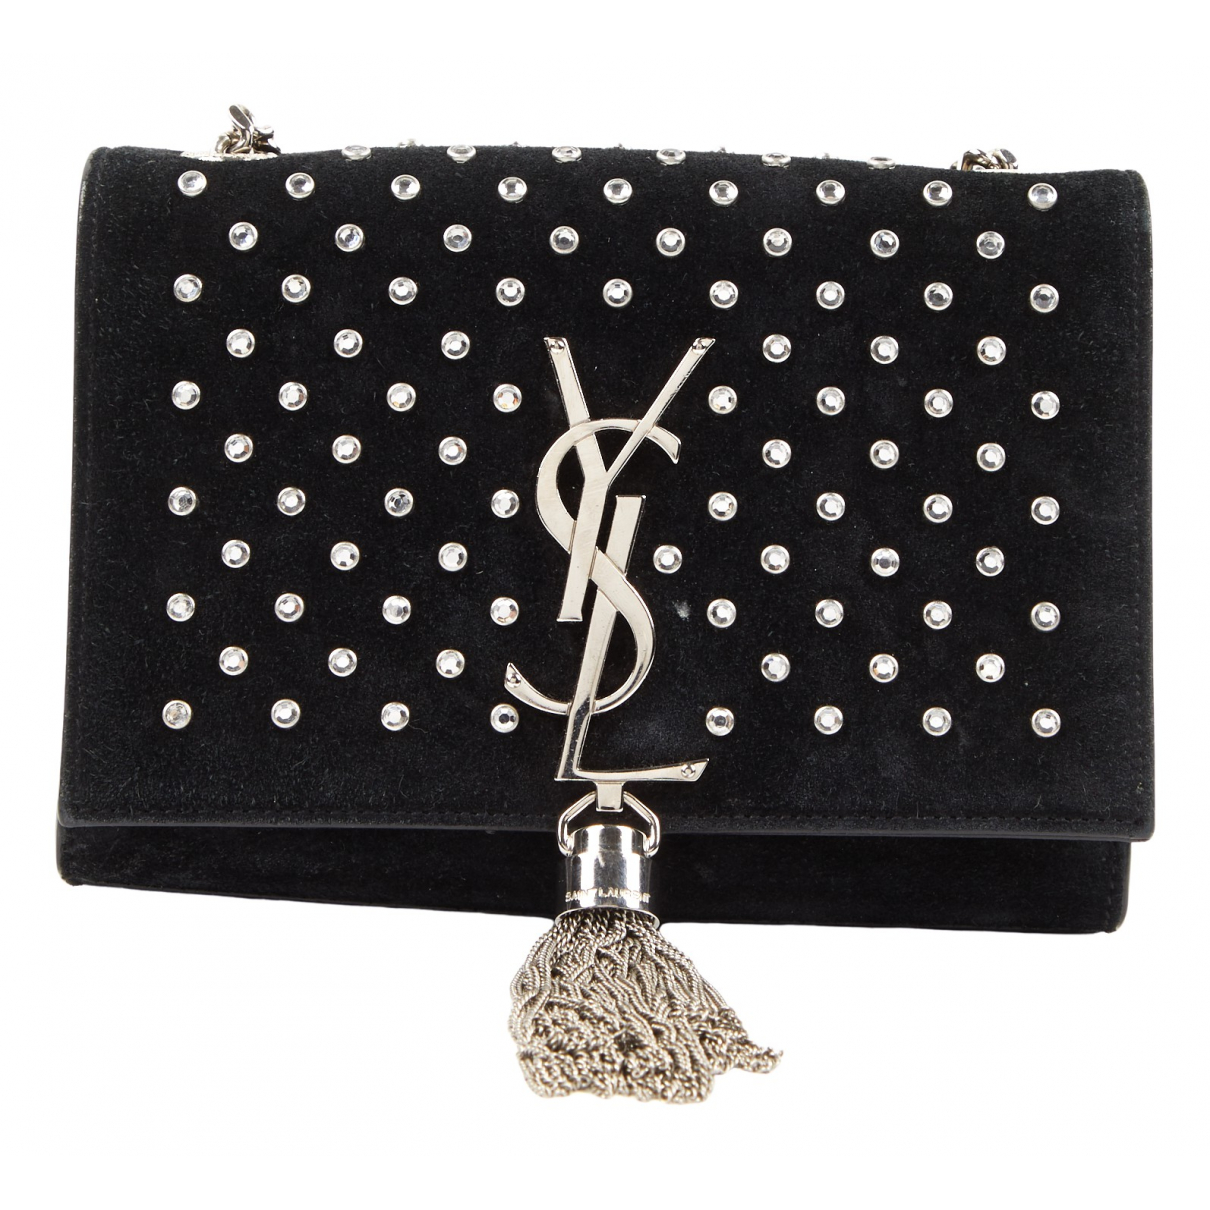 Saint Laurent \N Handtasche in  Schwarz Veloursleder